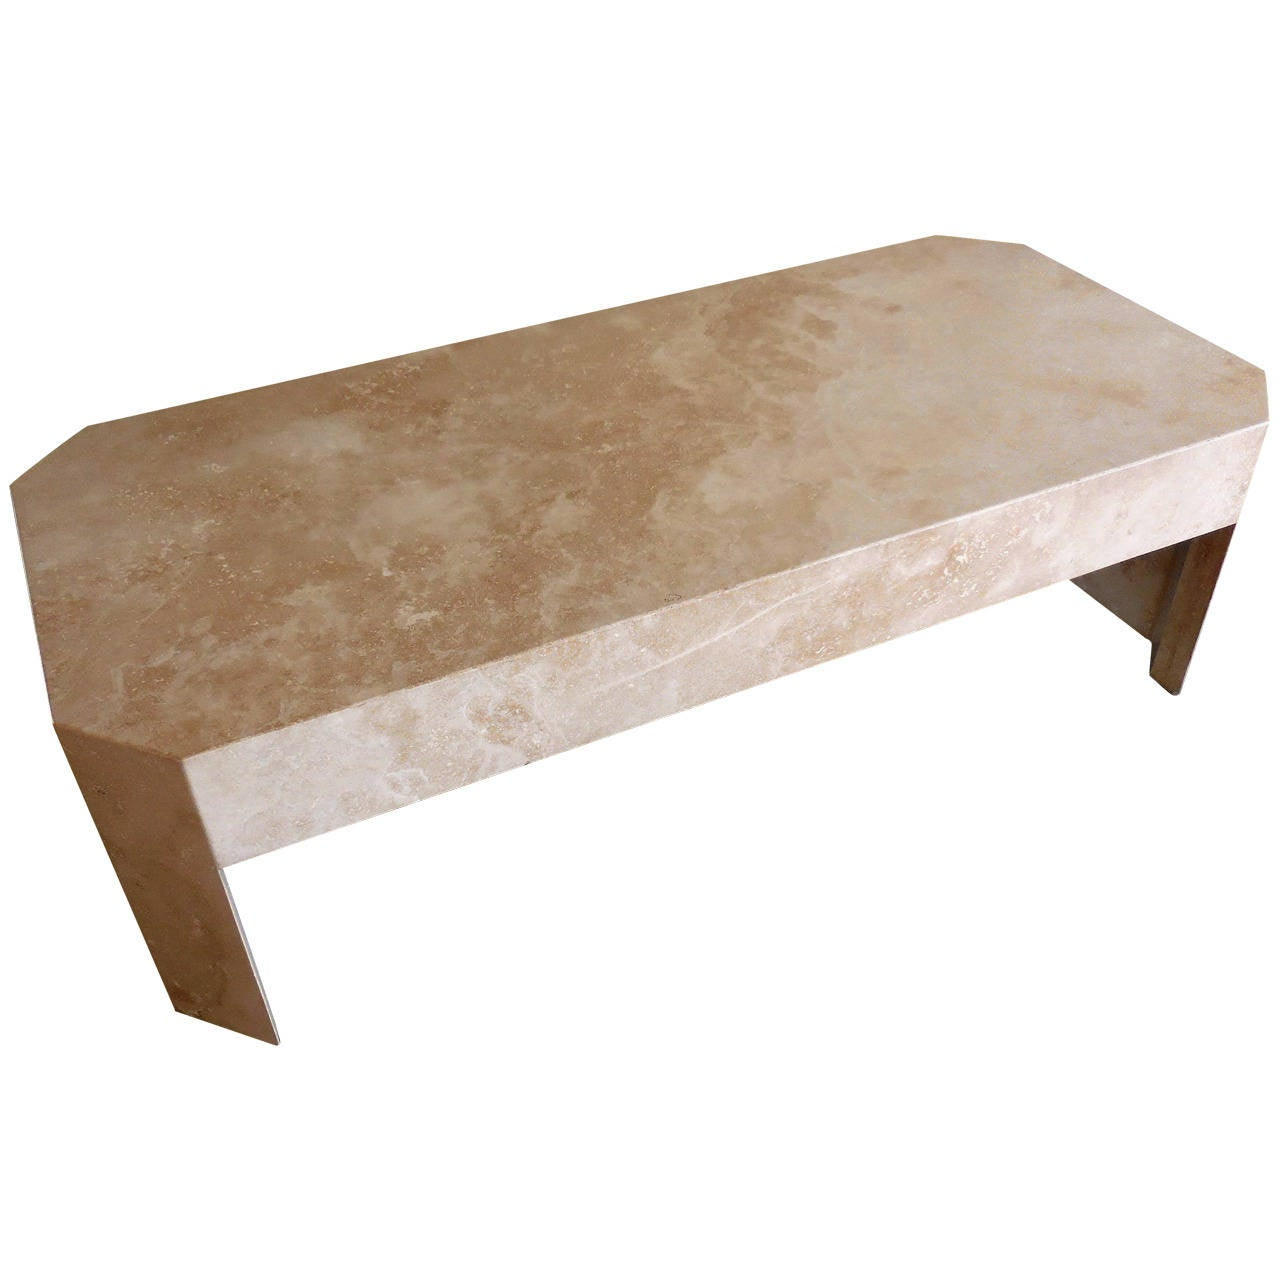 Canted Corner Rectangular Travertine Coffee Table Circa 1980s At 1stdibs